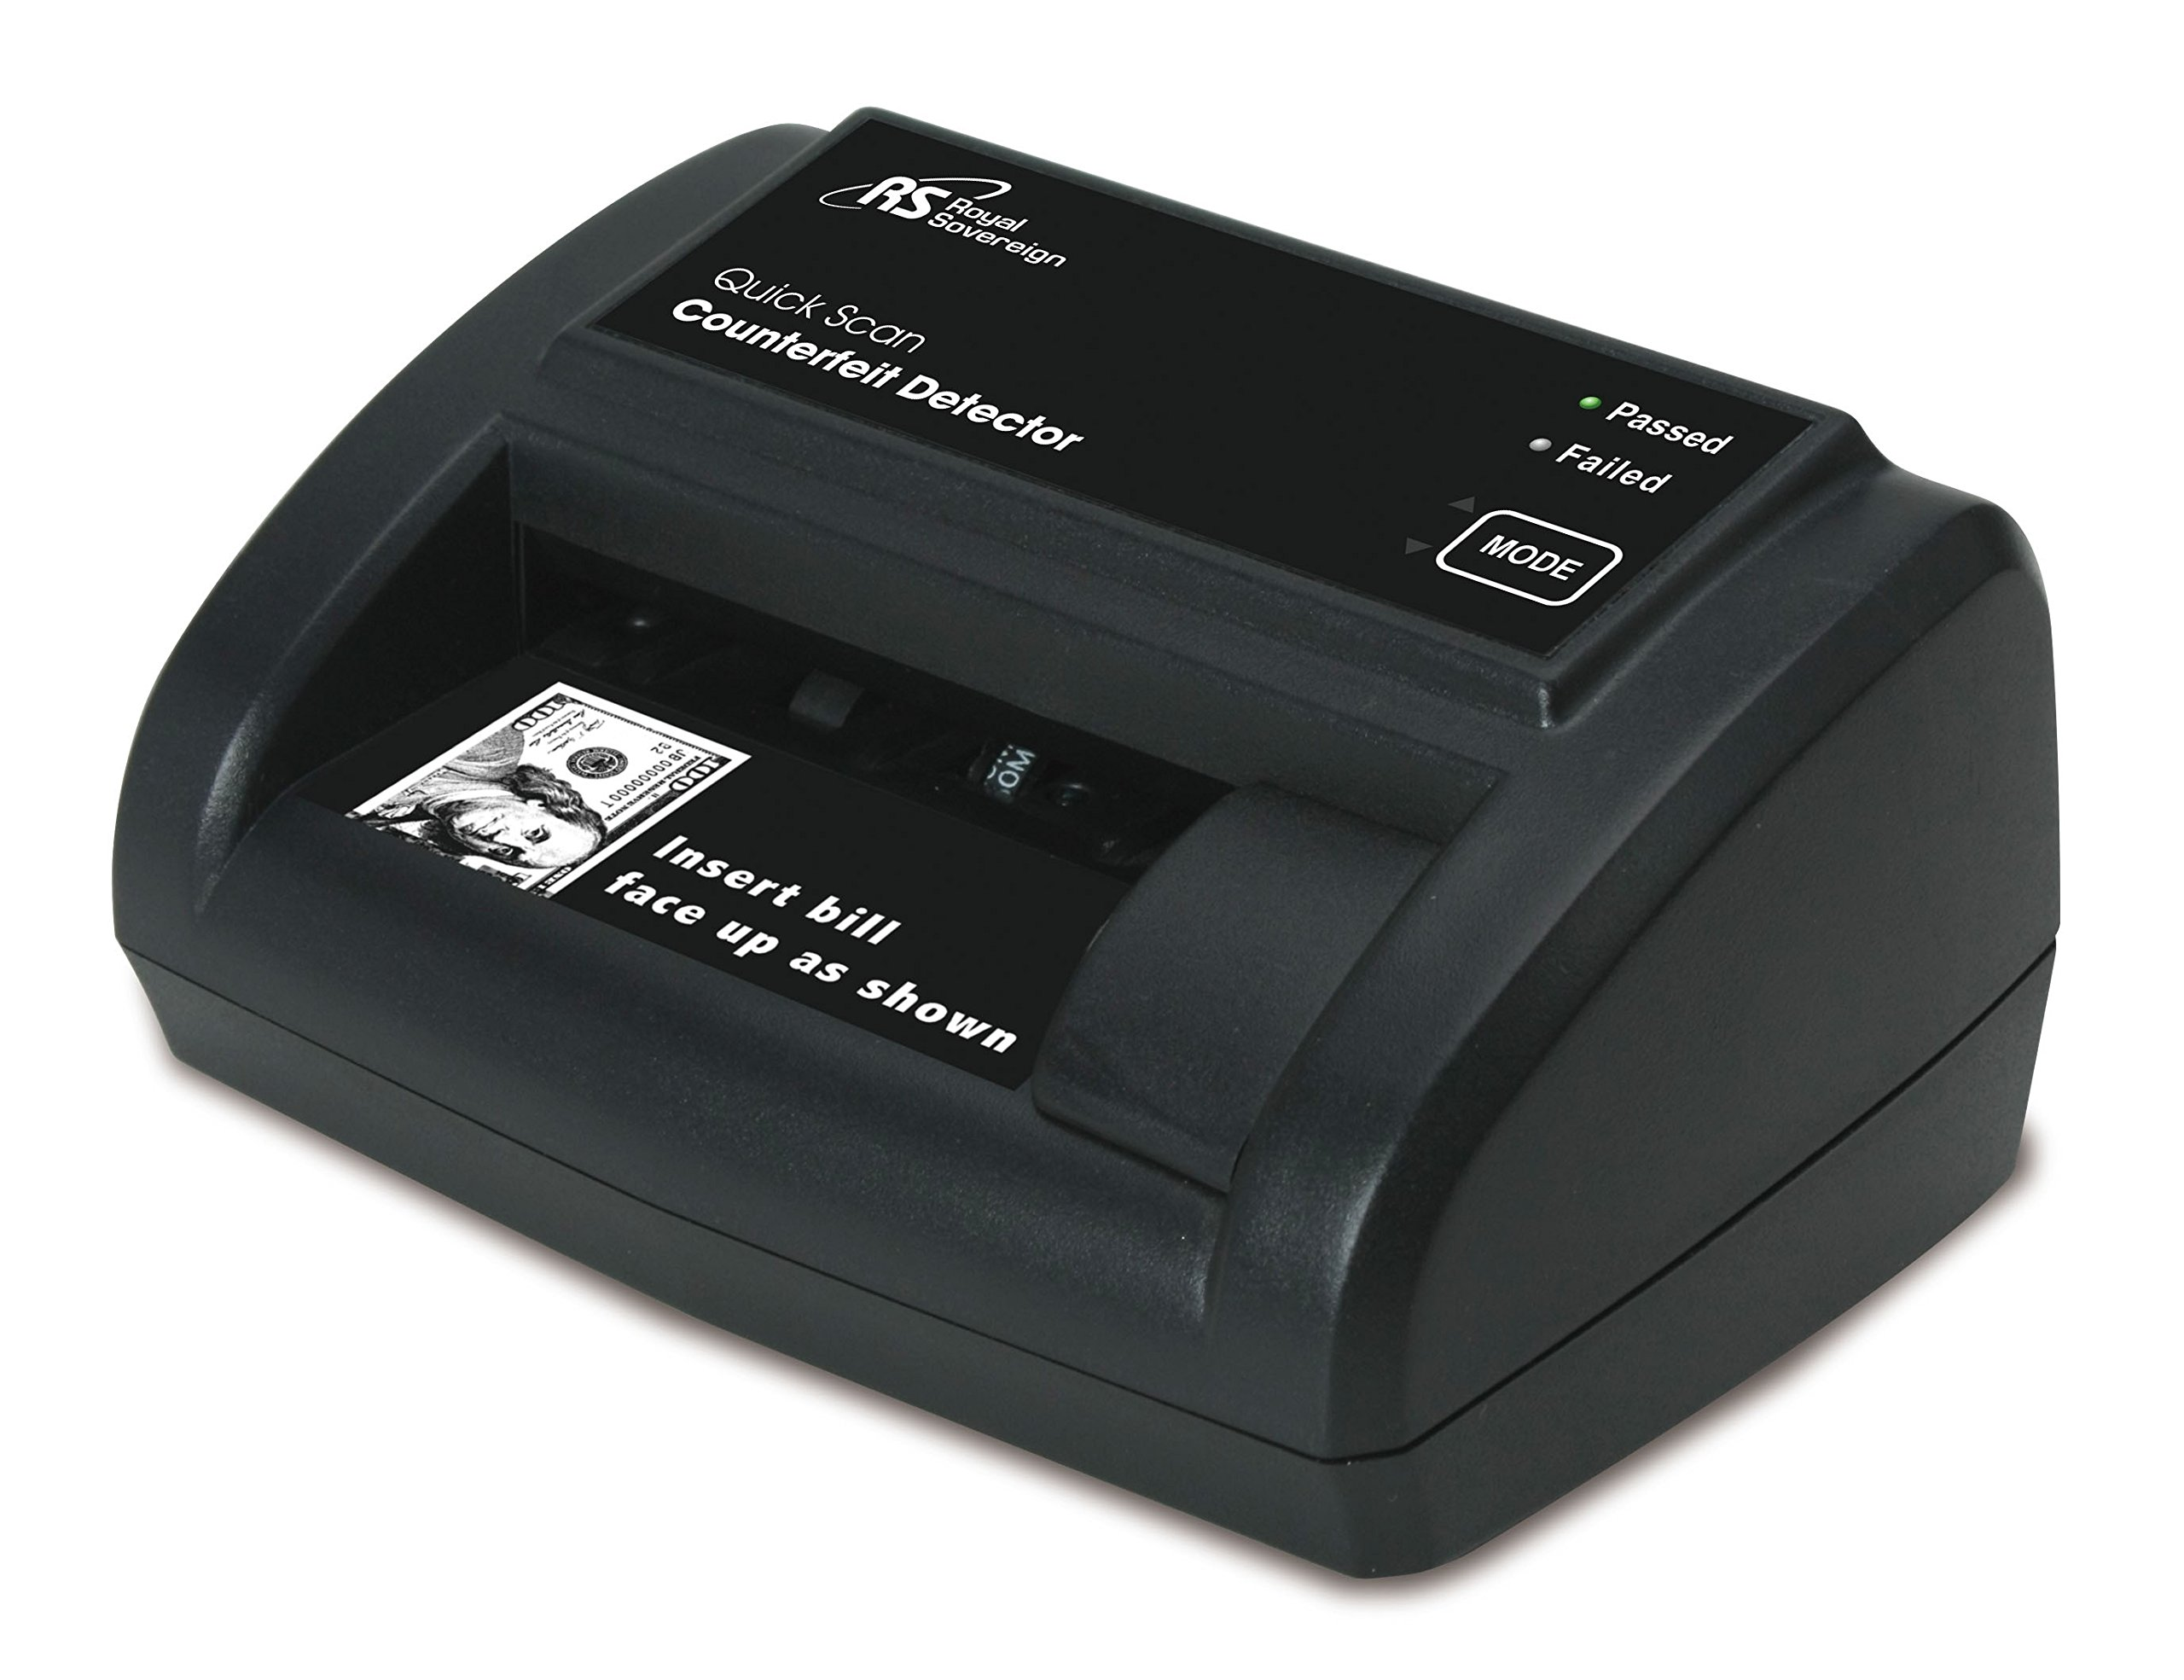 Royal Sovereign Quick Scan Counterfeit Detector (RCD-2120)